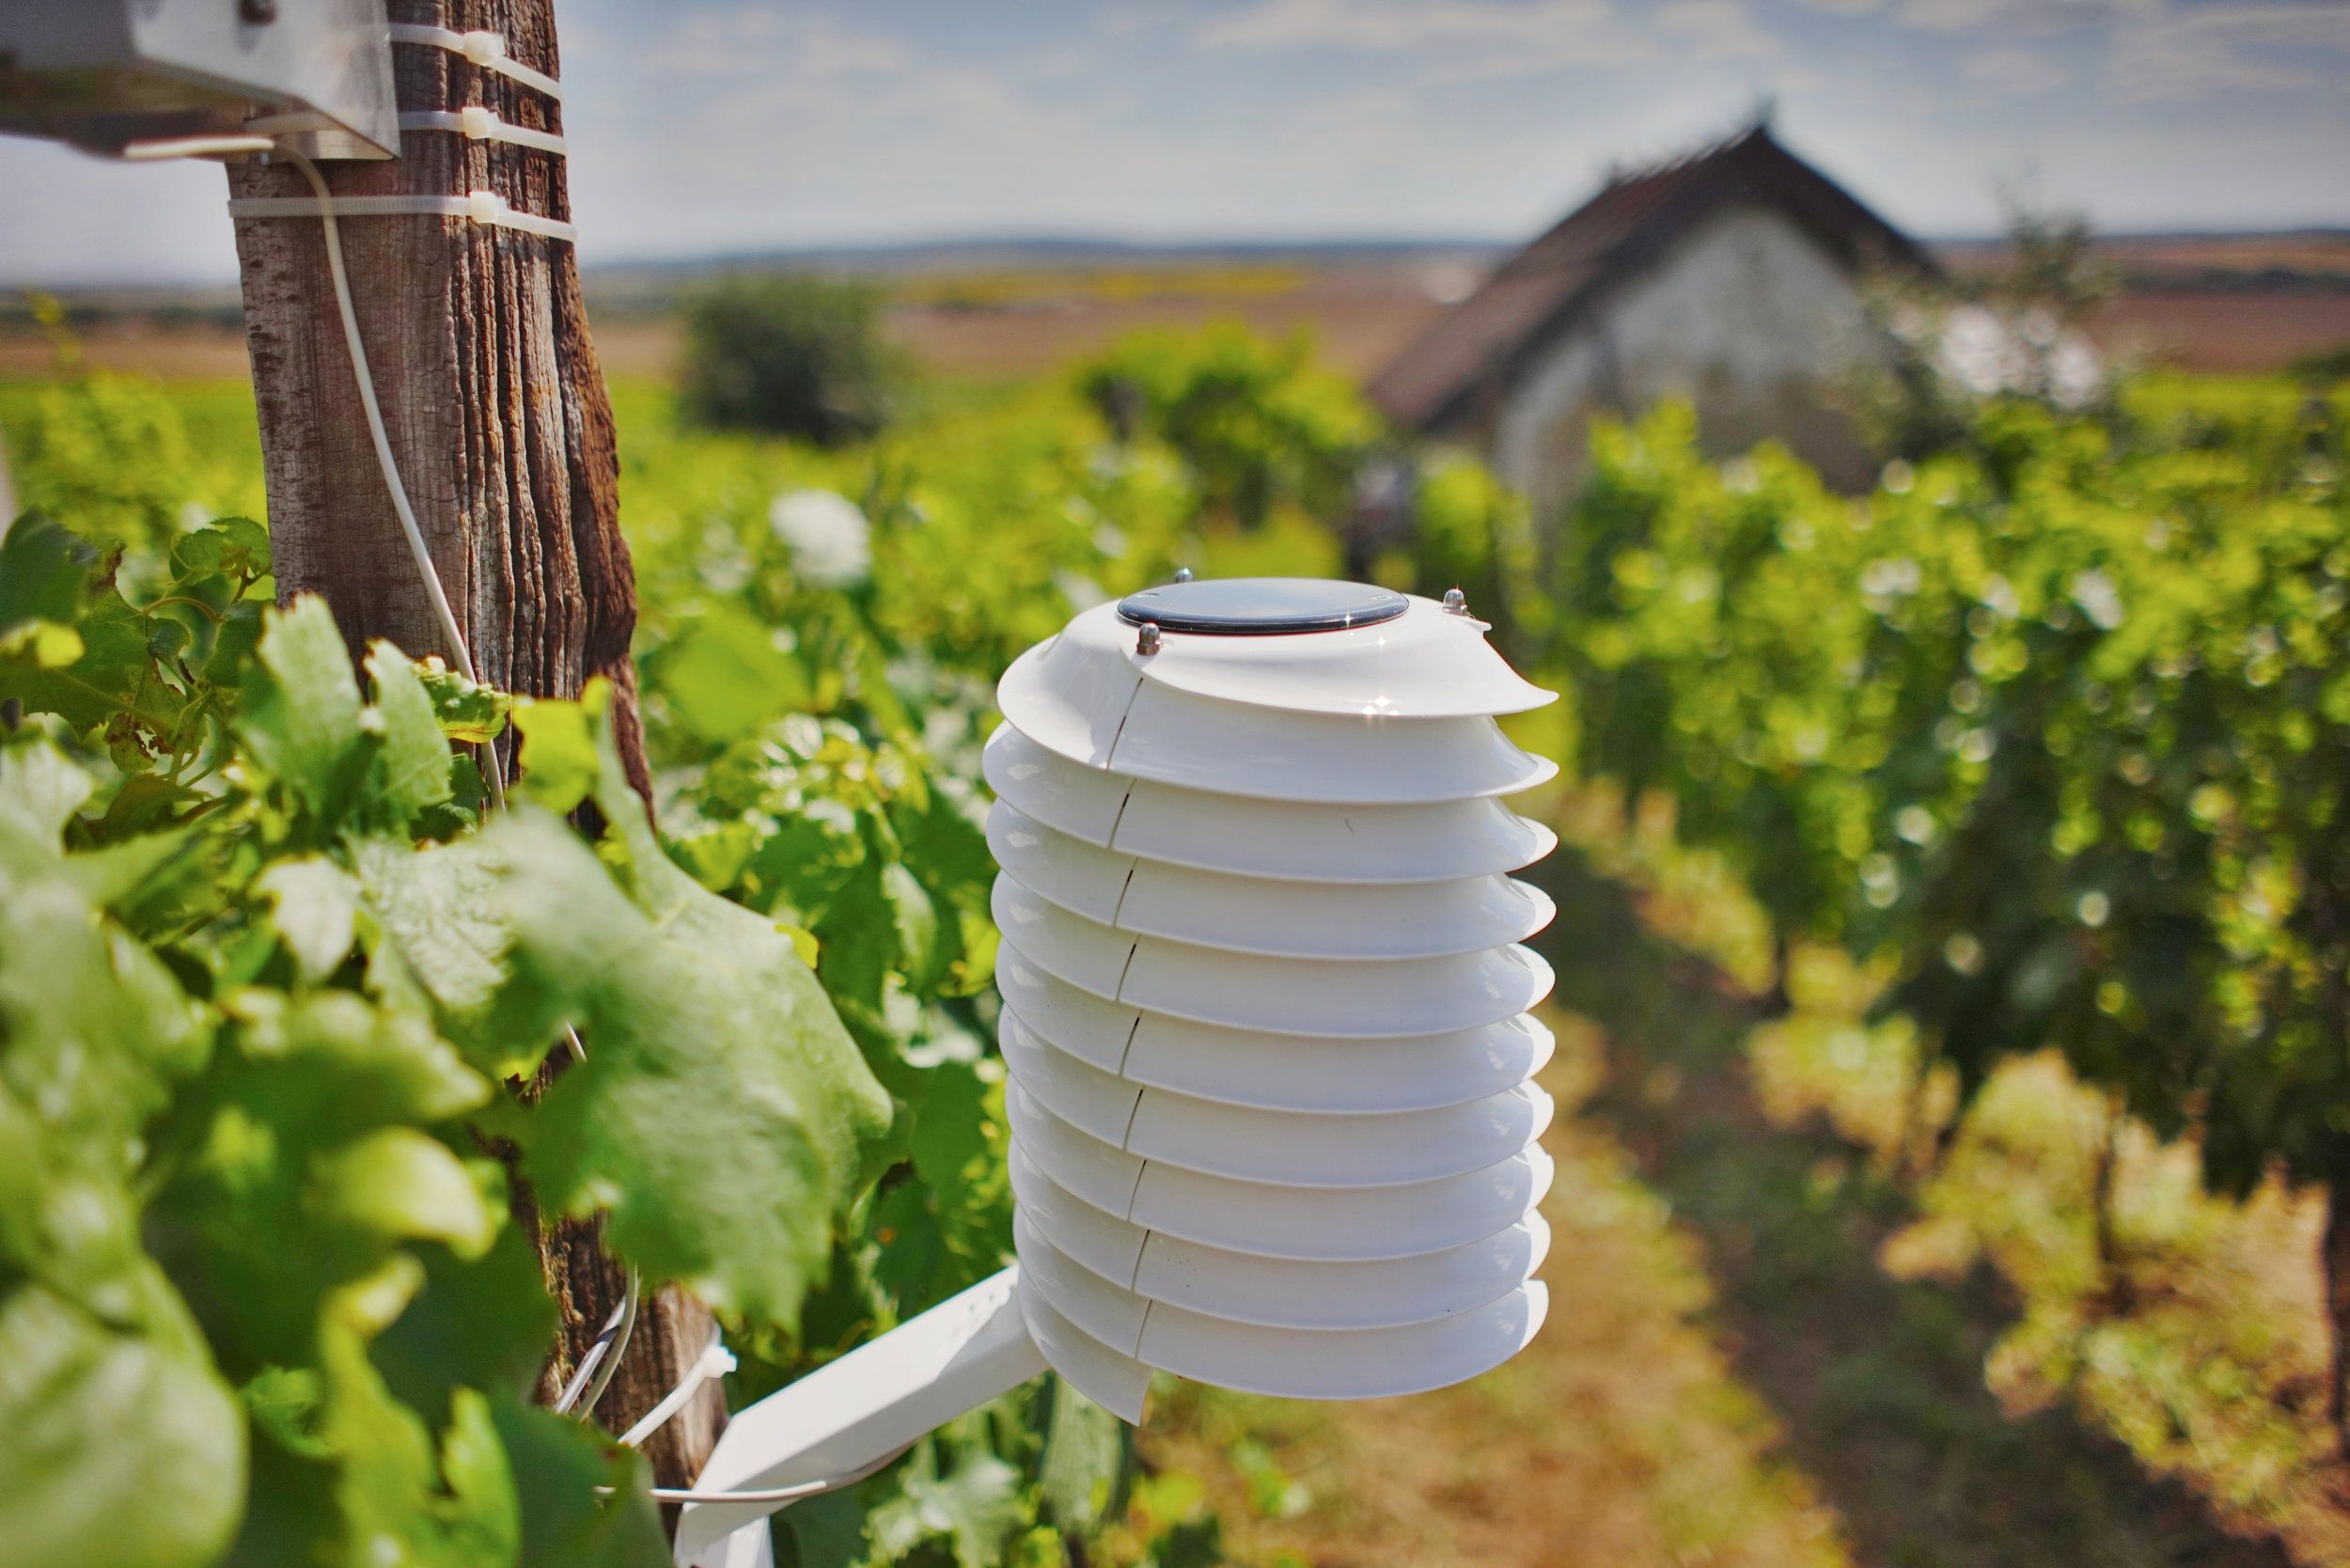 MeteoHelix Pro weather station for wine growing